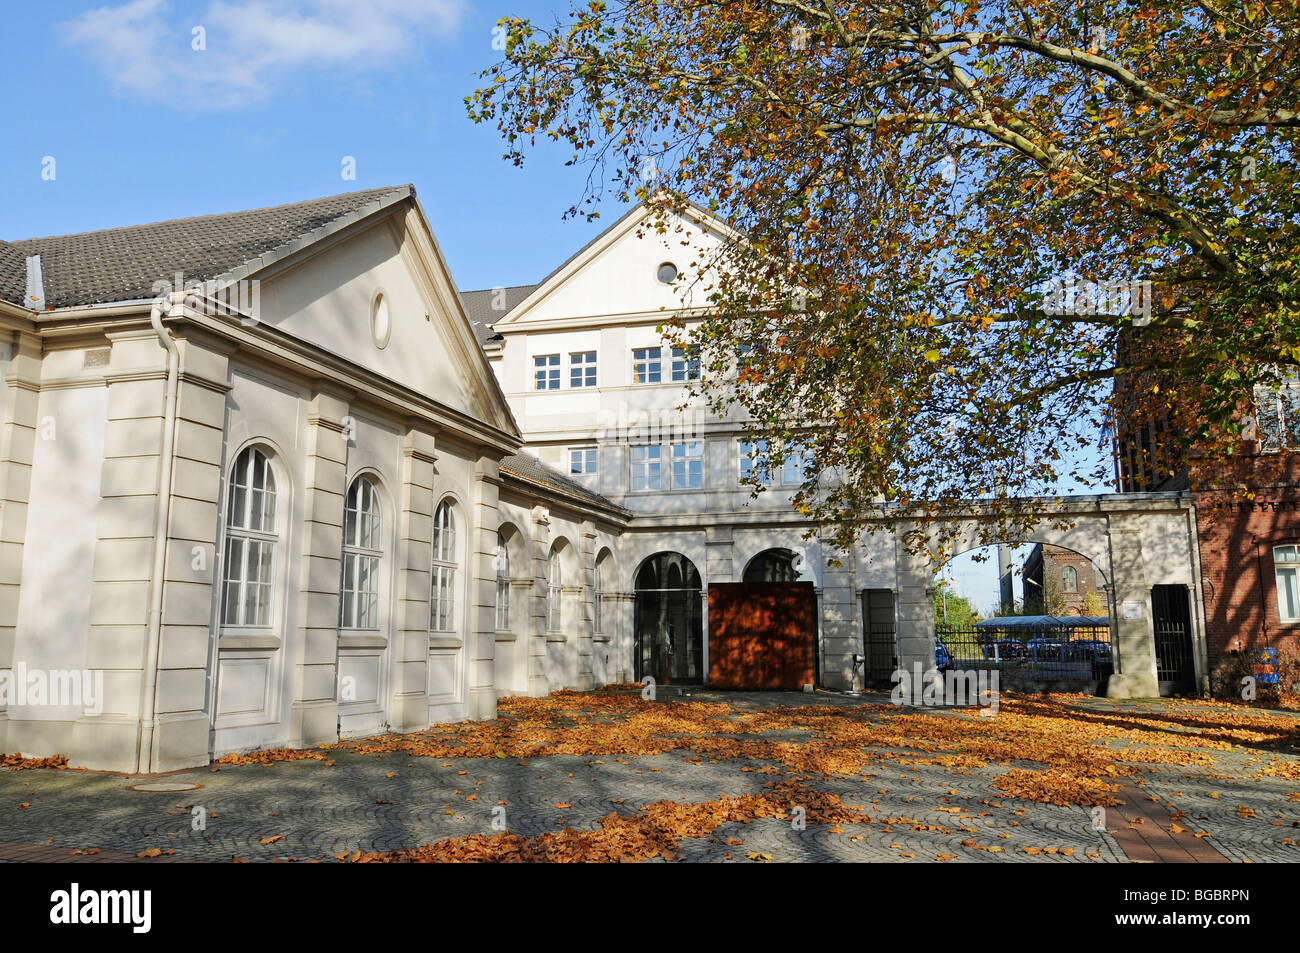 Hoesch Museum, Hoesch, steel industry, mining and steel-producing industries, Ruhrgebiet area, Dortmund, North Rhine - Stock Image